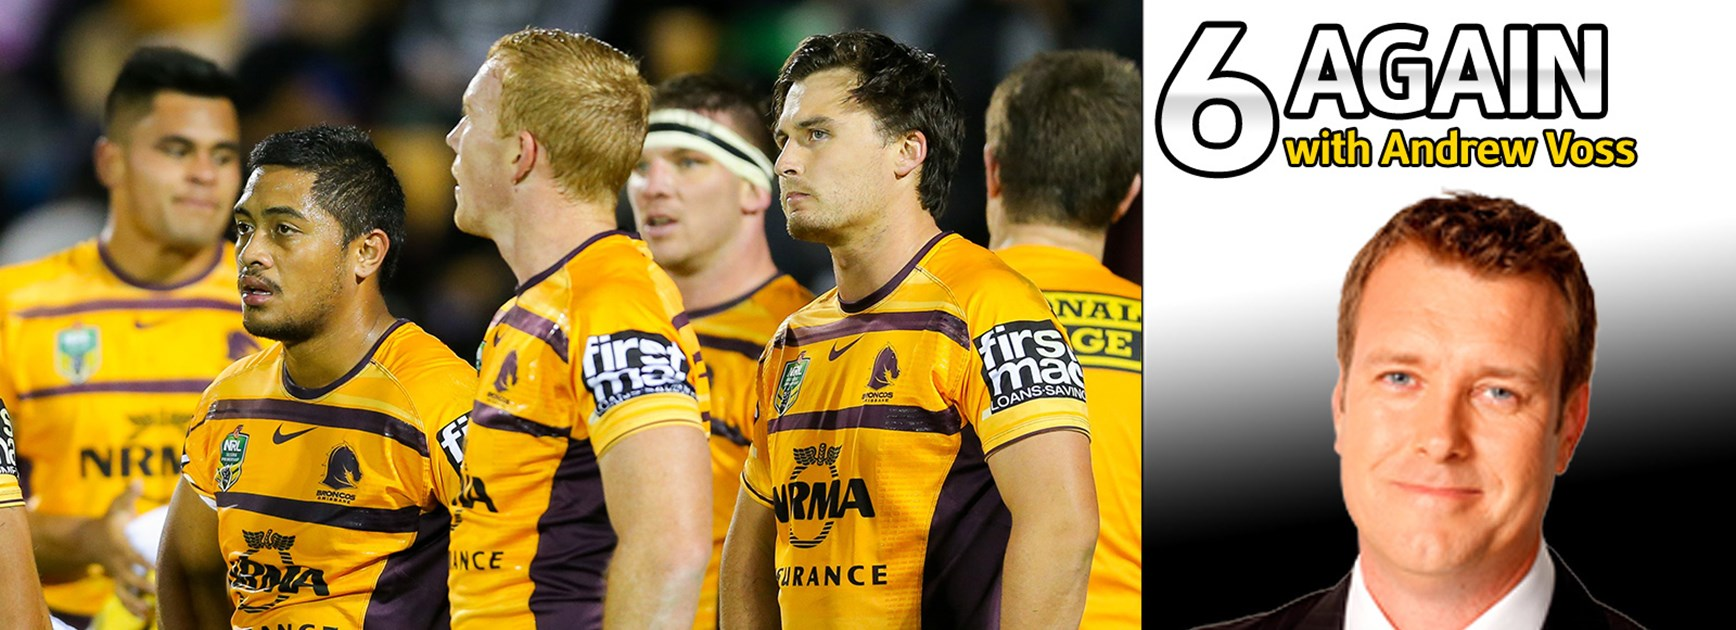 Andrew Voss asks if the Brisbane Broncos are under pressure after three straight losses.